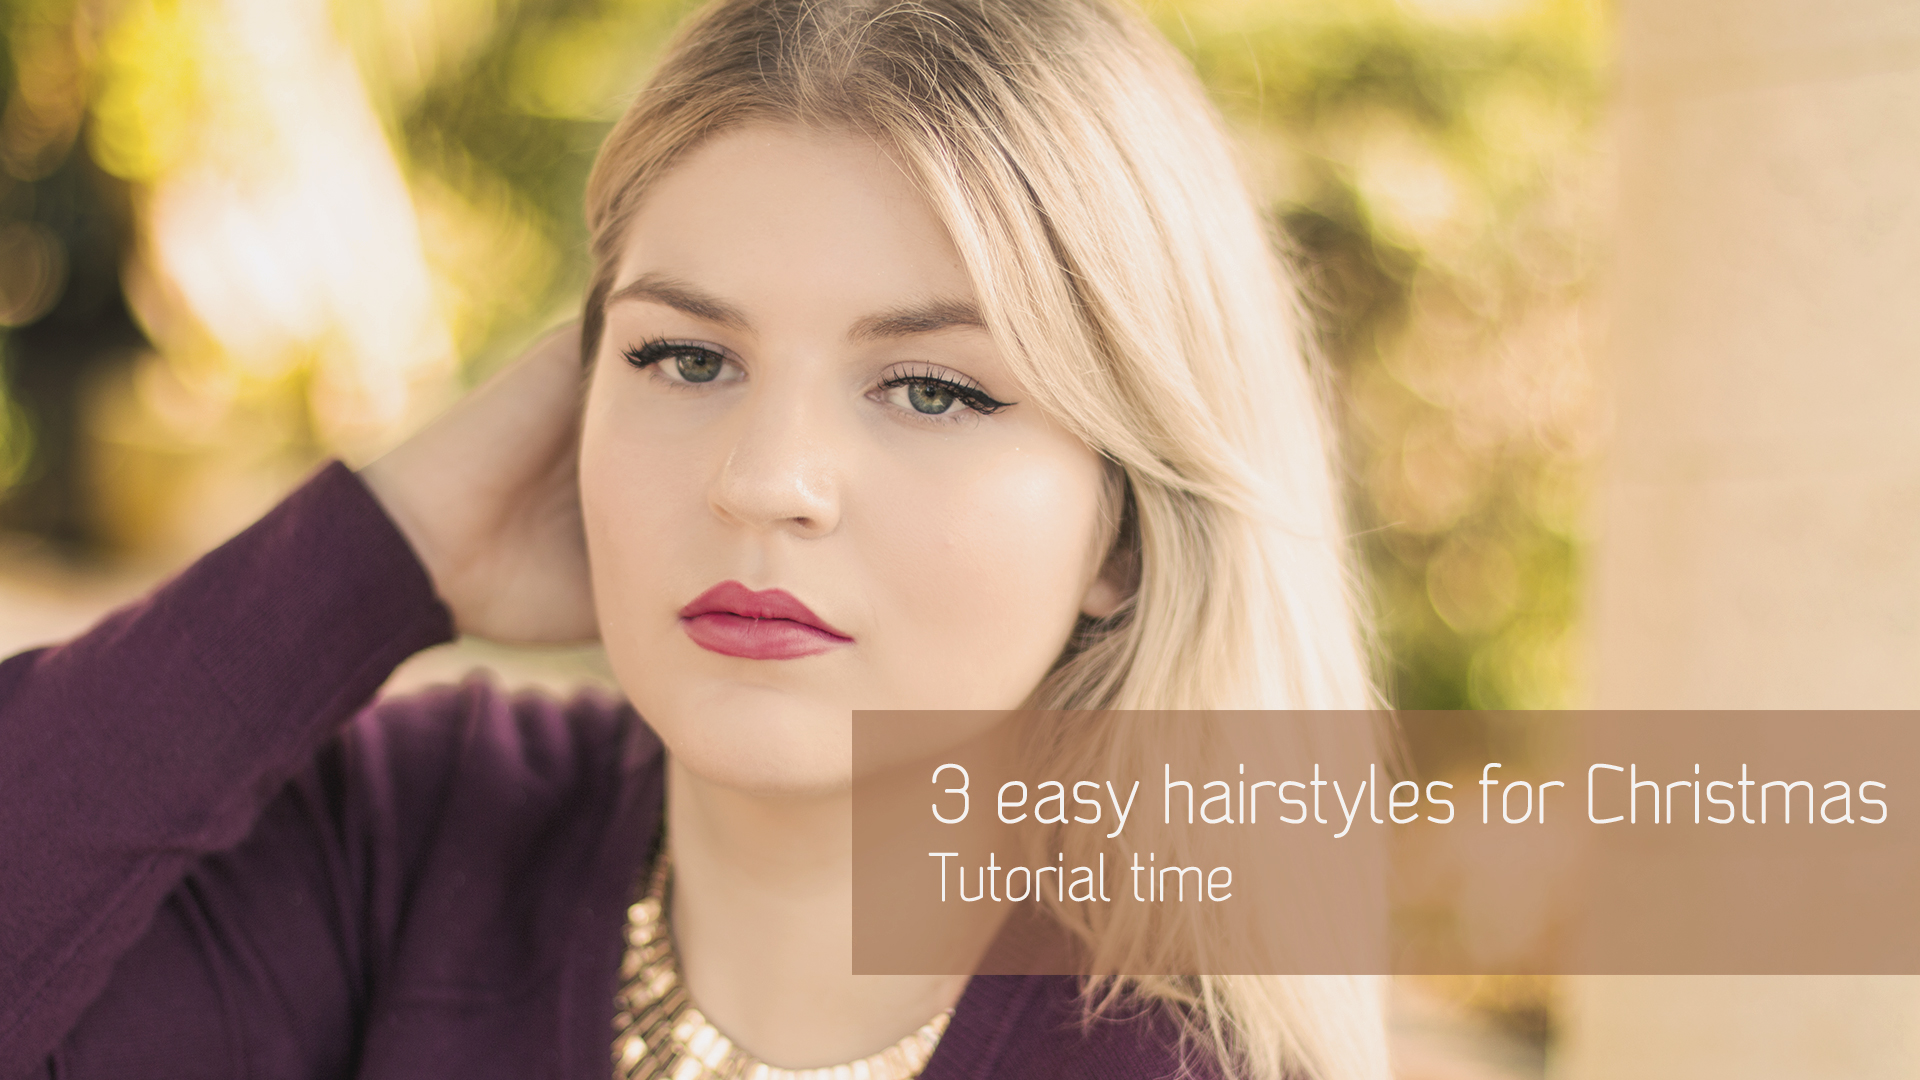 3 chic & easy hairstyle ideas for Christmas